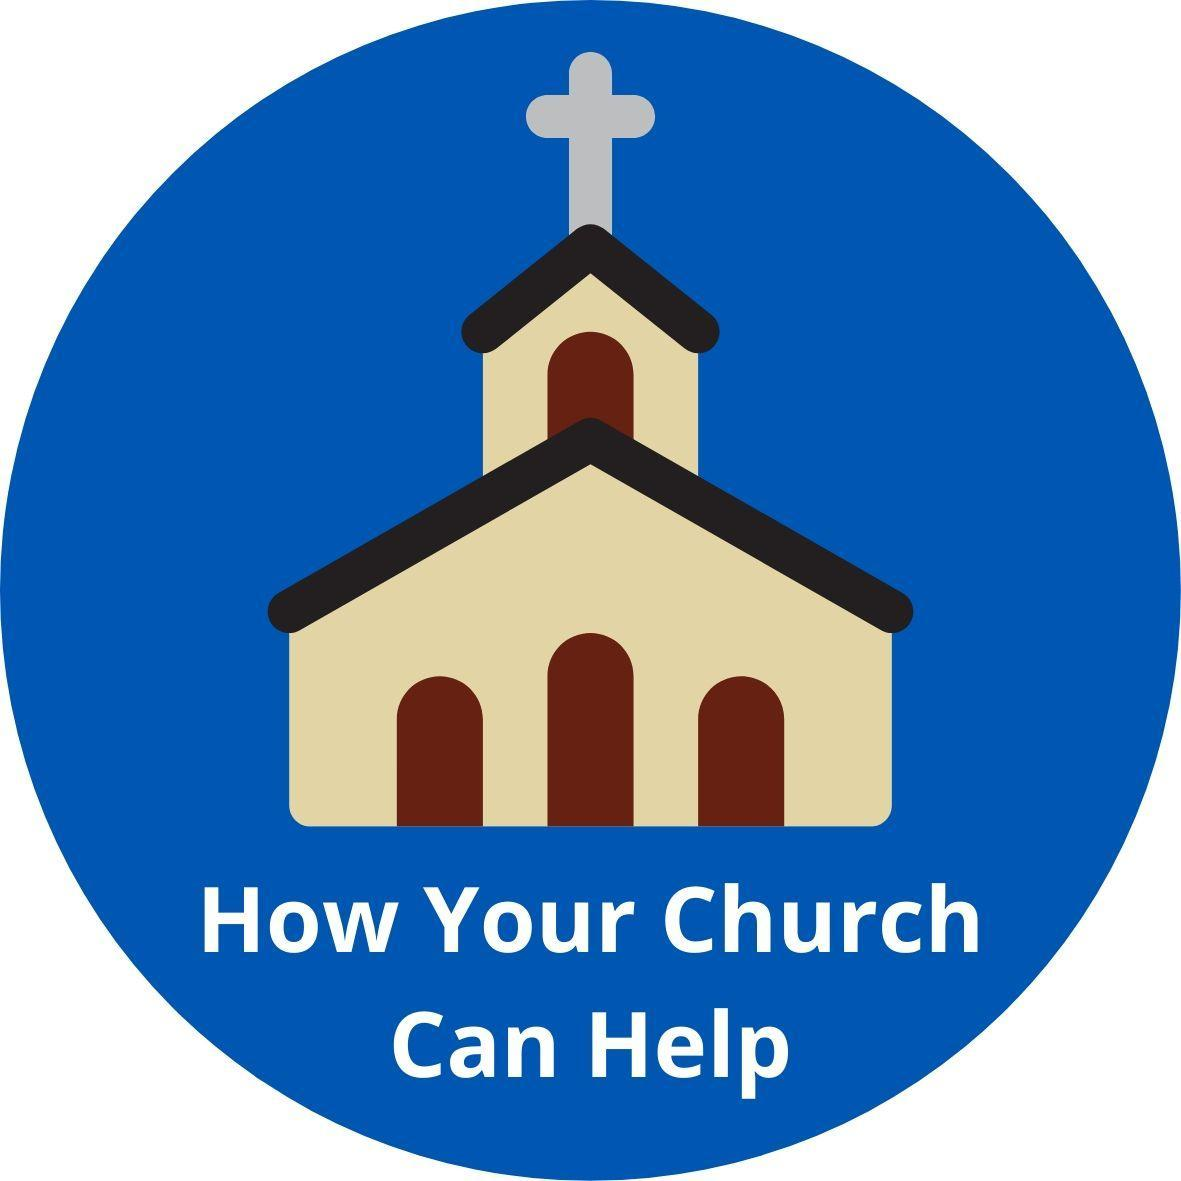 How Your Church Can Help